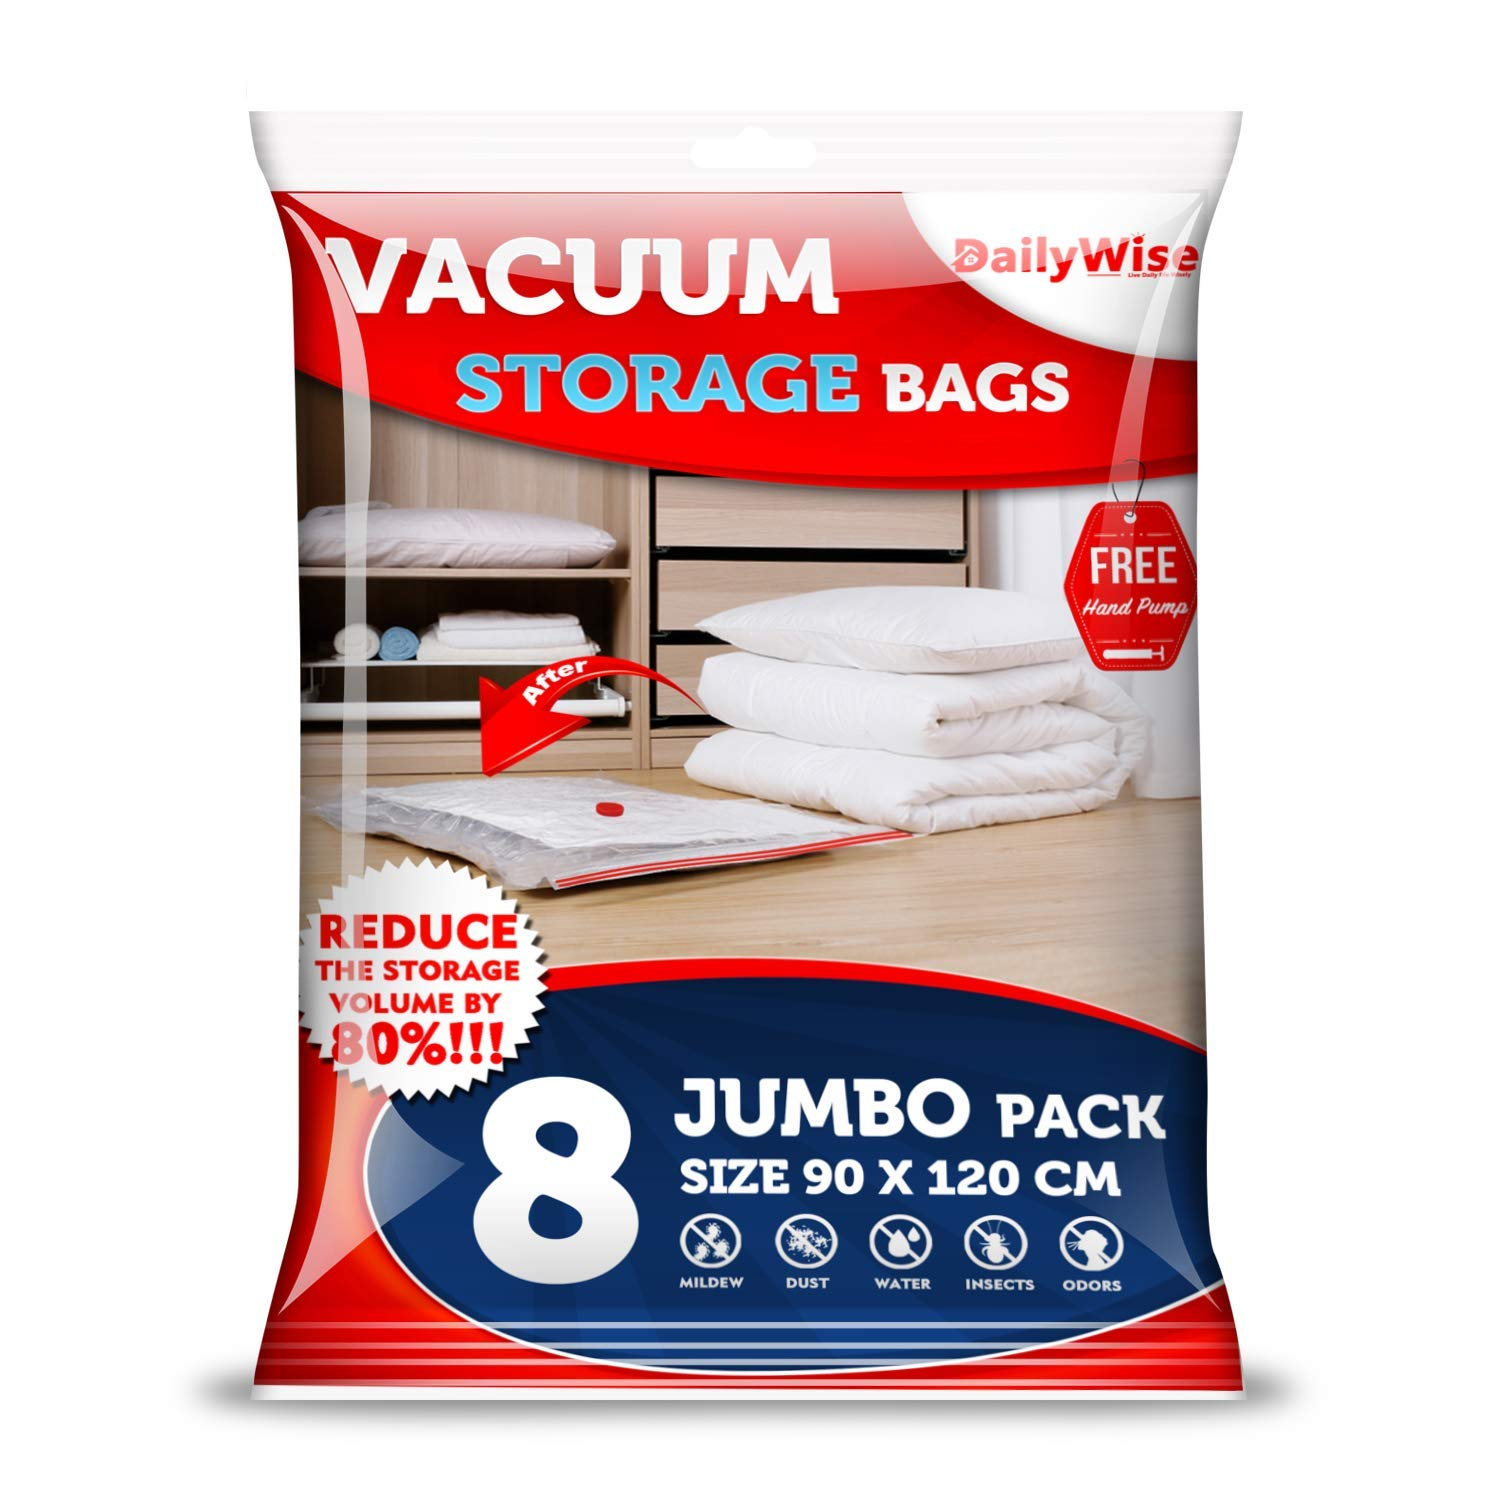 DailyWise Extra Large Vacuum Storage Bags Jumbo 8 Pack (35'' x 47''), Space Bags for Pillows, Duvets, Blankets and Comforters, Lifetime Replacement Guarantee by DailyWise